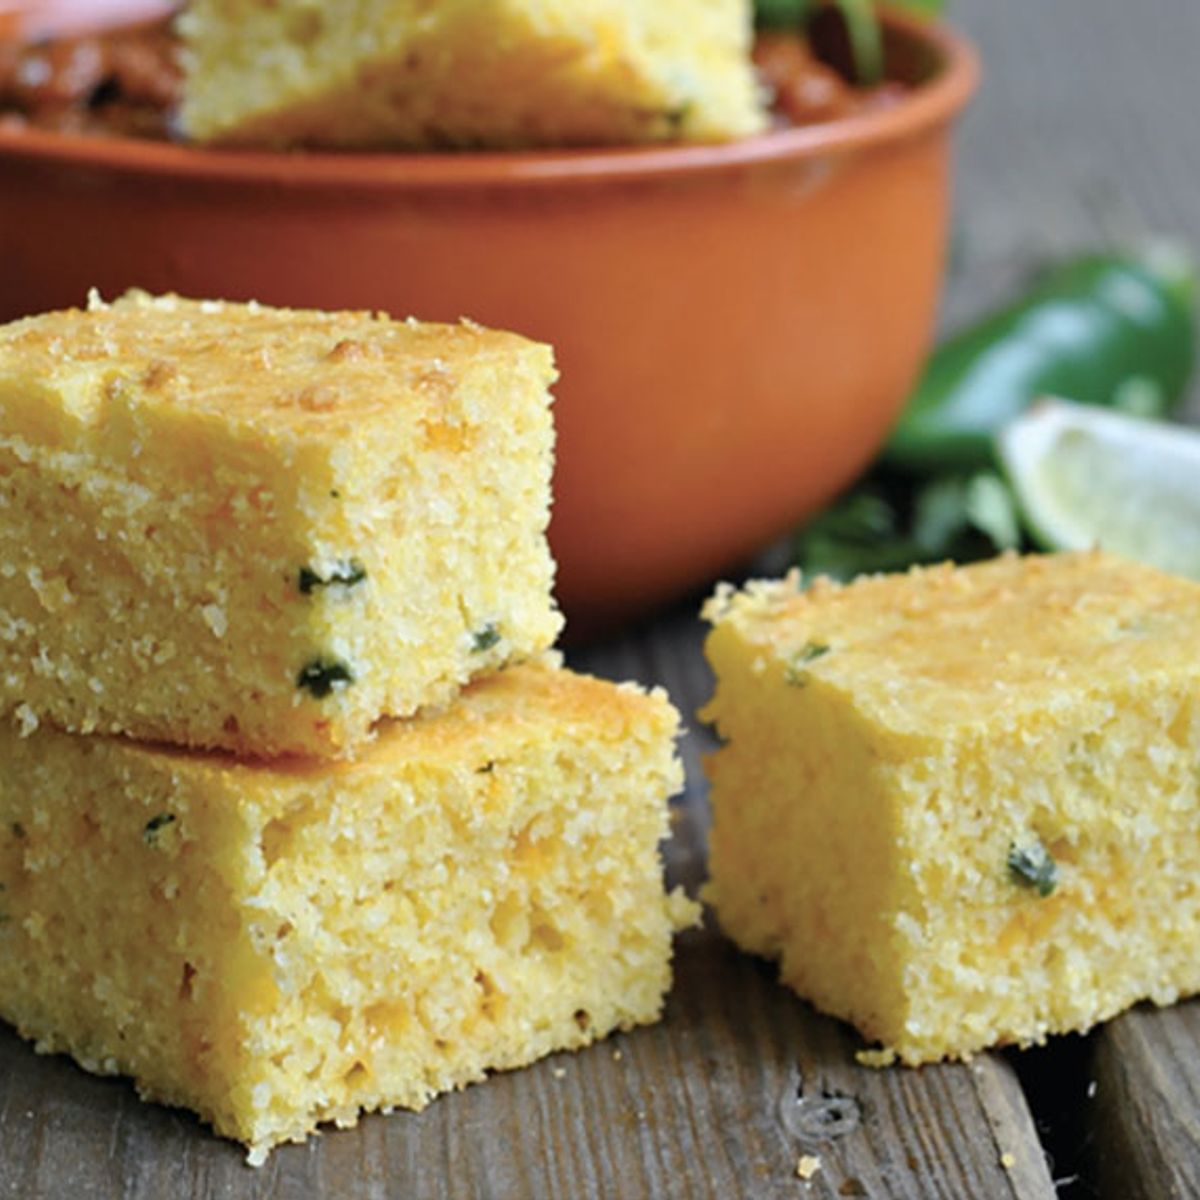 Almond flour allows for a rich slice of jalapeño cheddar cornbread with none of the guilt